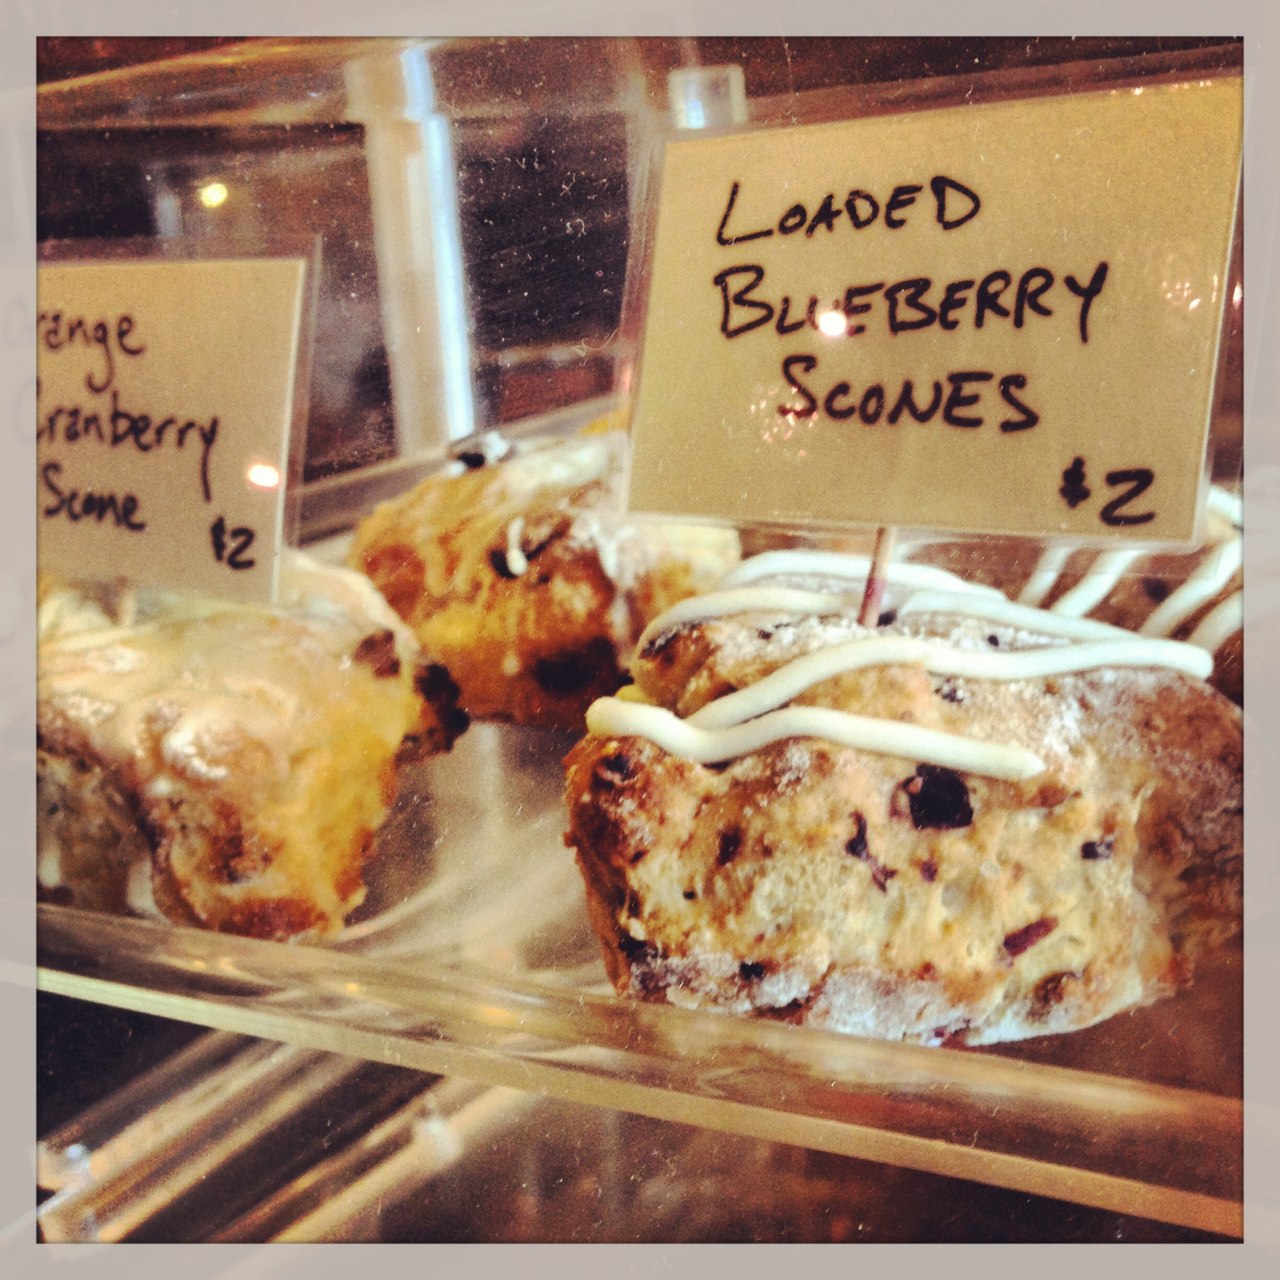 Loaded Blueberry Scones are back, but they won't last long!